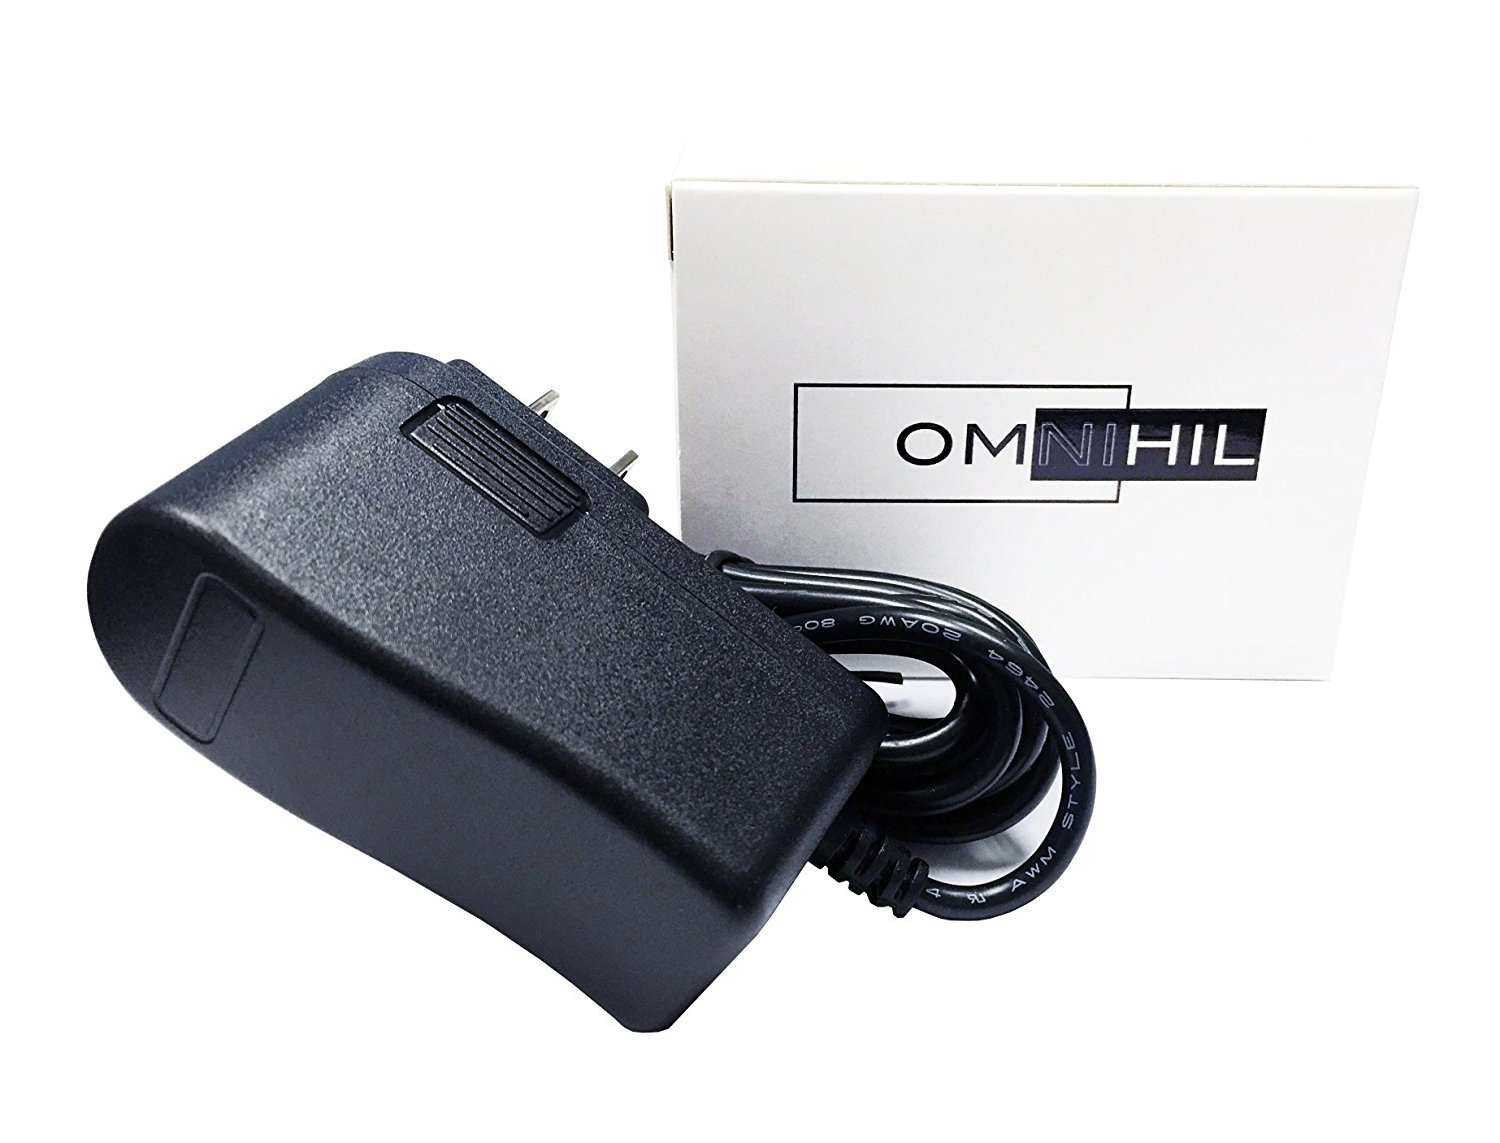 [UL Listed] 8 Foot Long Omnihil AC/DC Power Adapter 12V 1A (1000mA) 5.5x2.5millimeters Compatible with LitterMaid LM680C Automatic Self-Cleaning Classic Litter Box by OMNIHIL